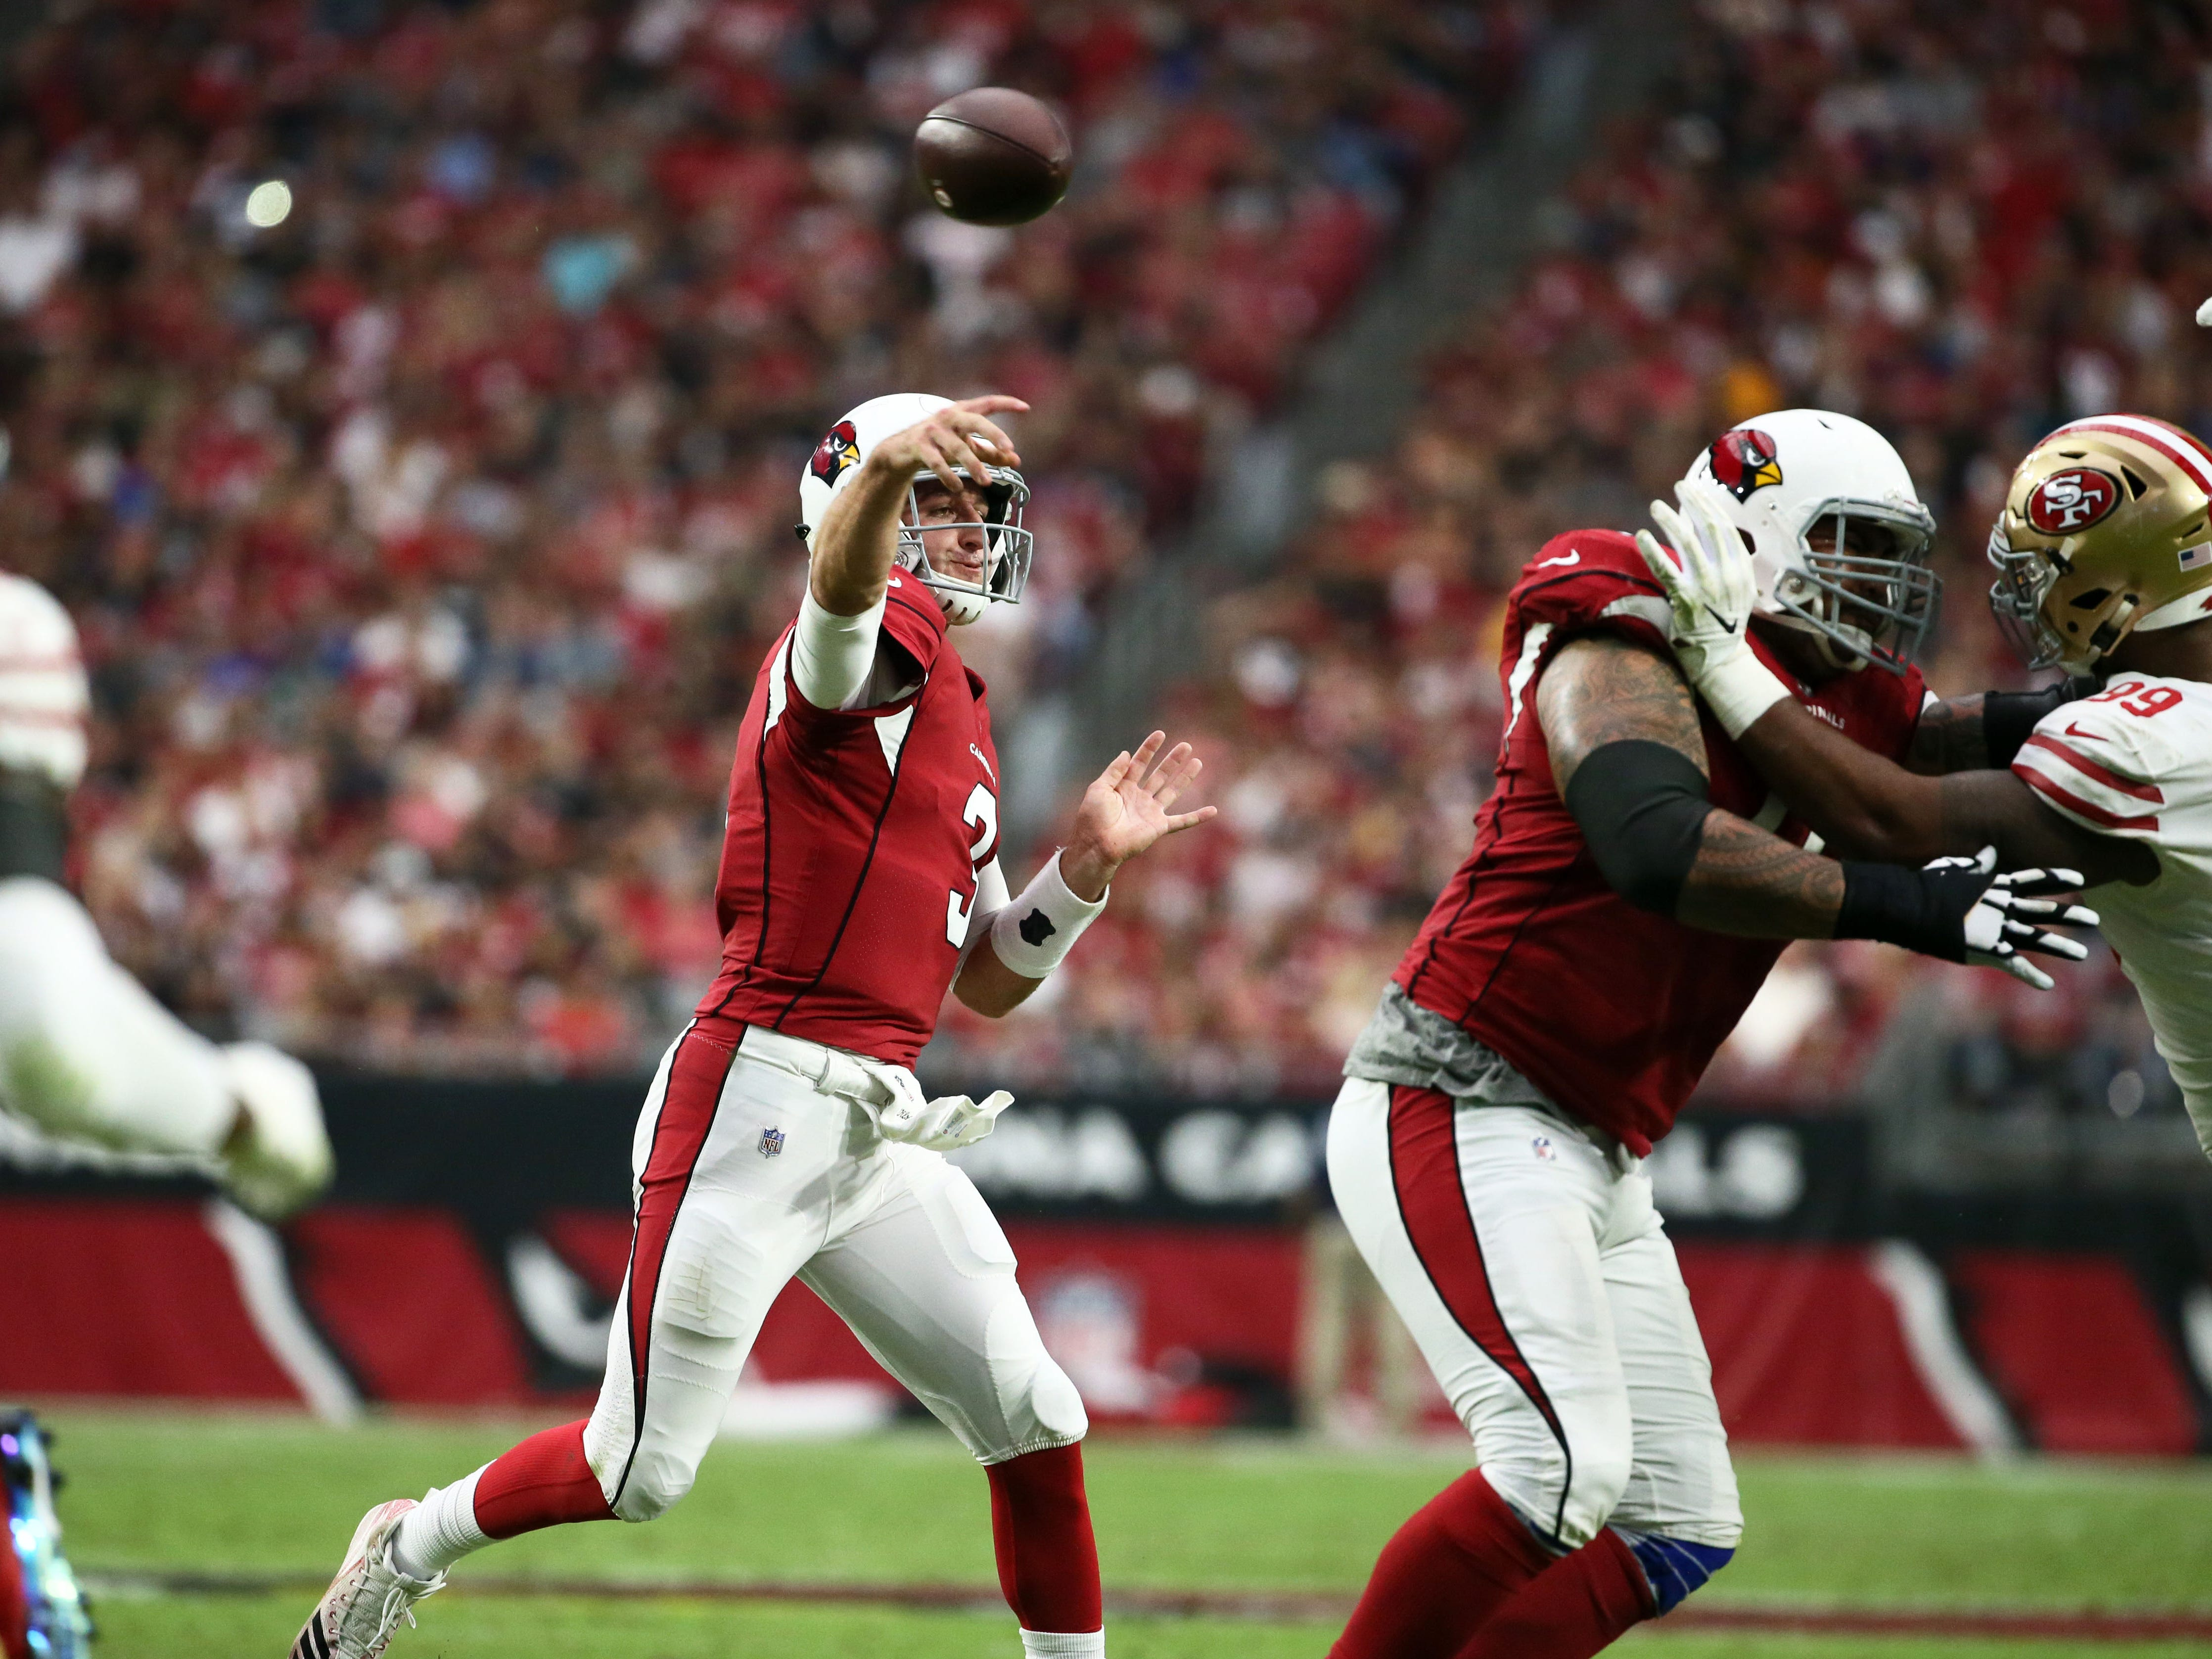 Arizona Cardinals quarterback Josh Rosen throws a pass against the San Francisco 49ers in the first half during a game on Oct. 28 at State Farm Stadium.